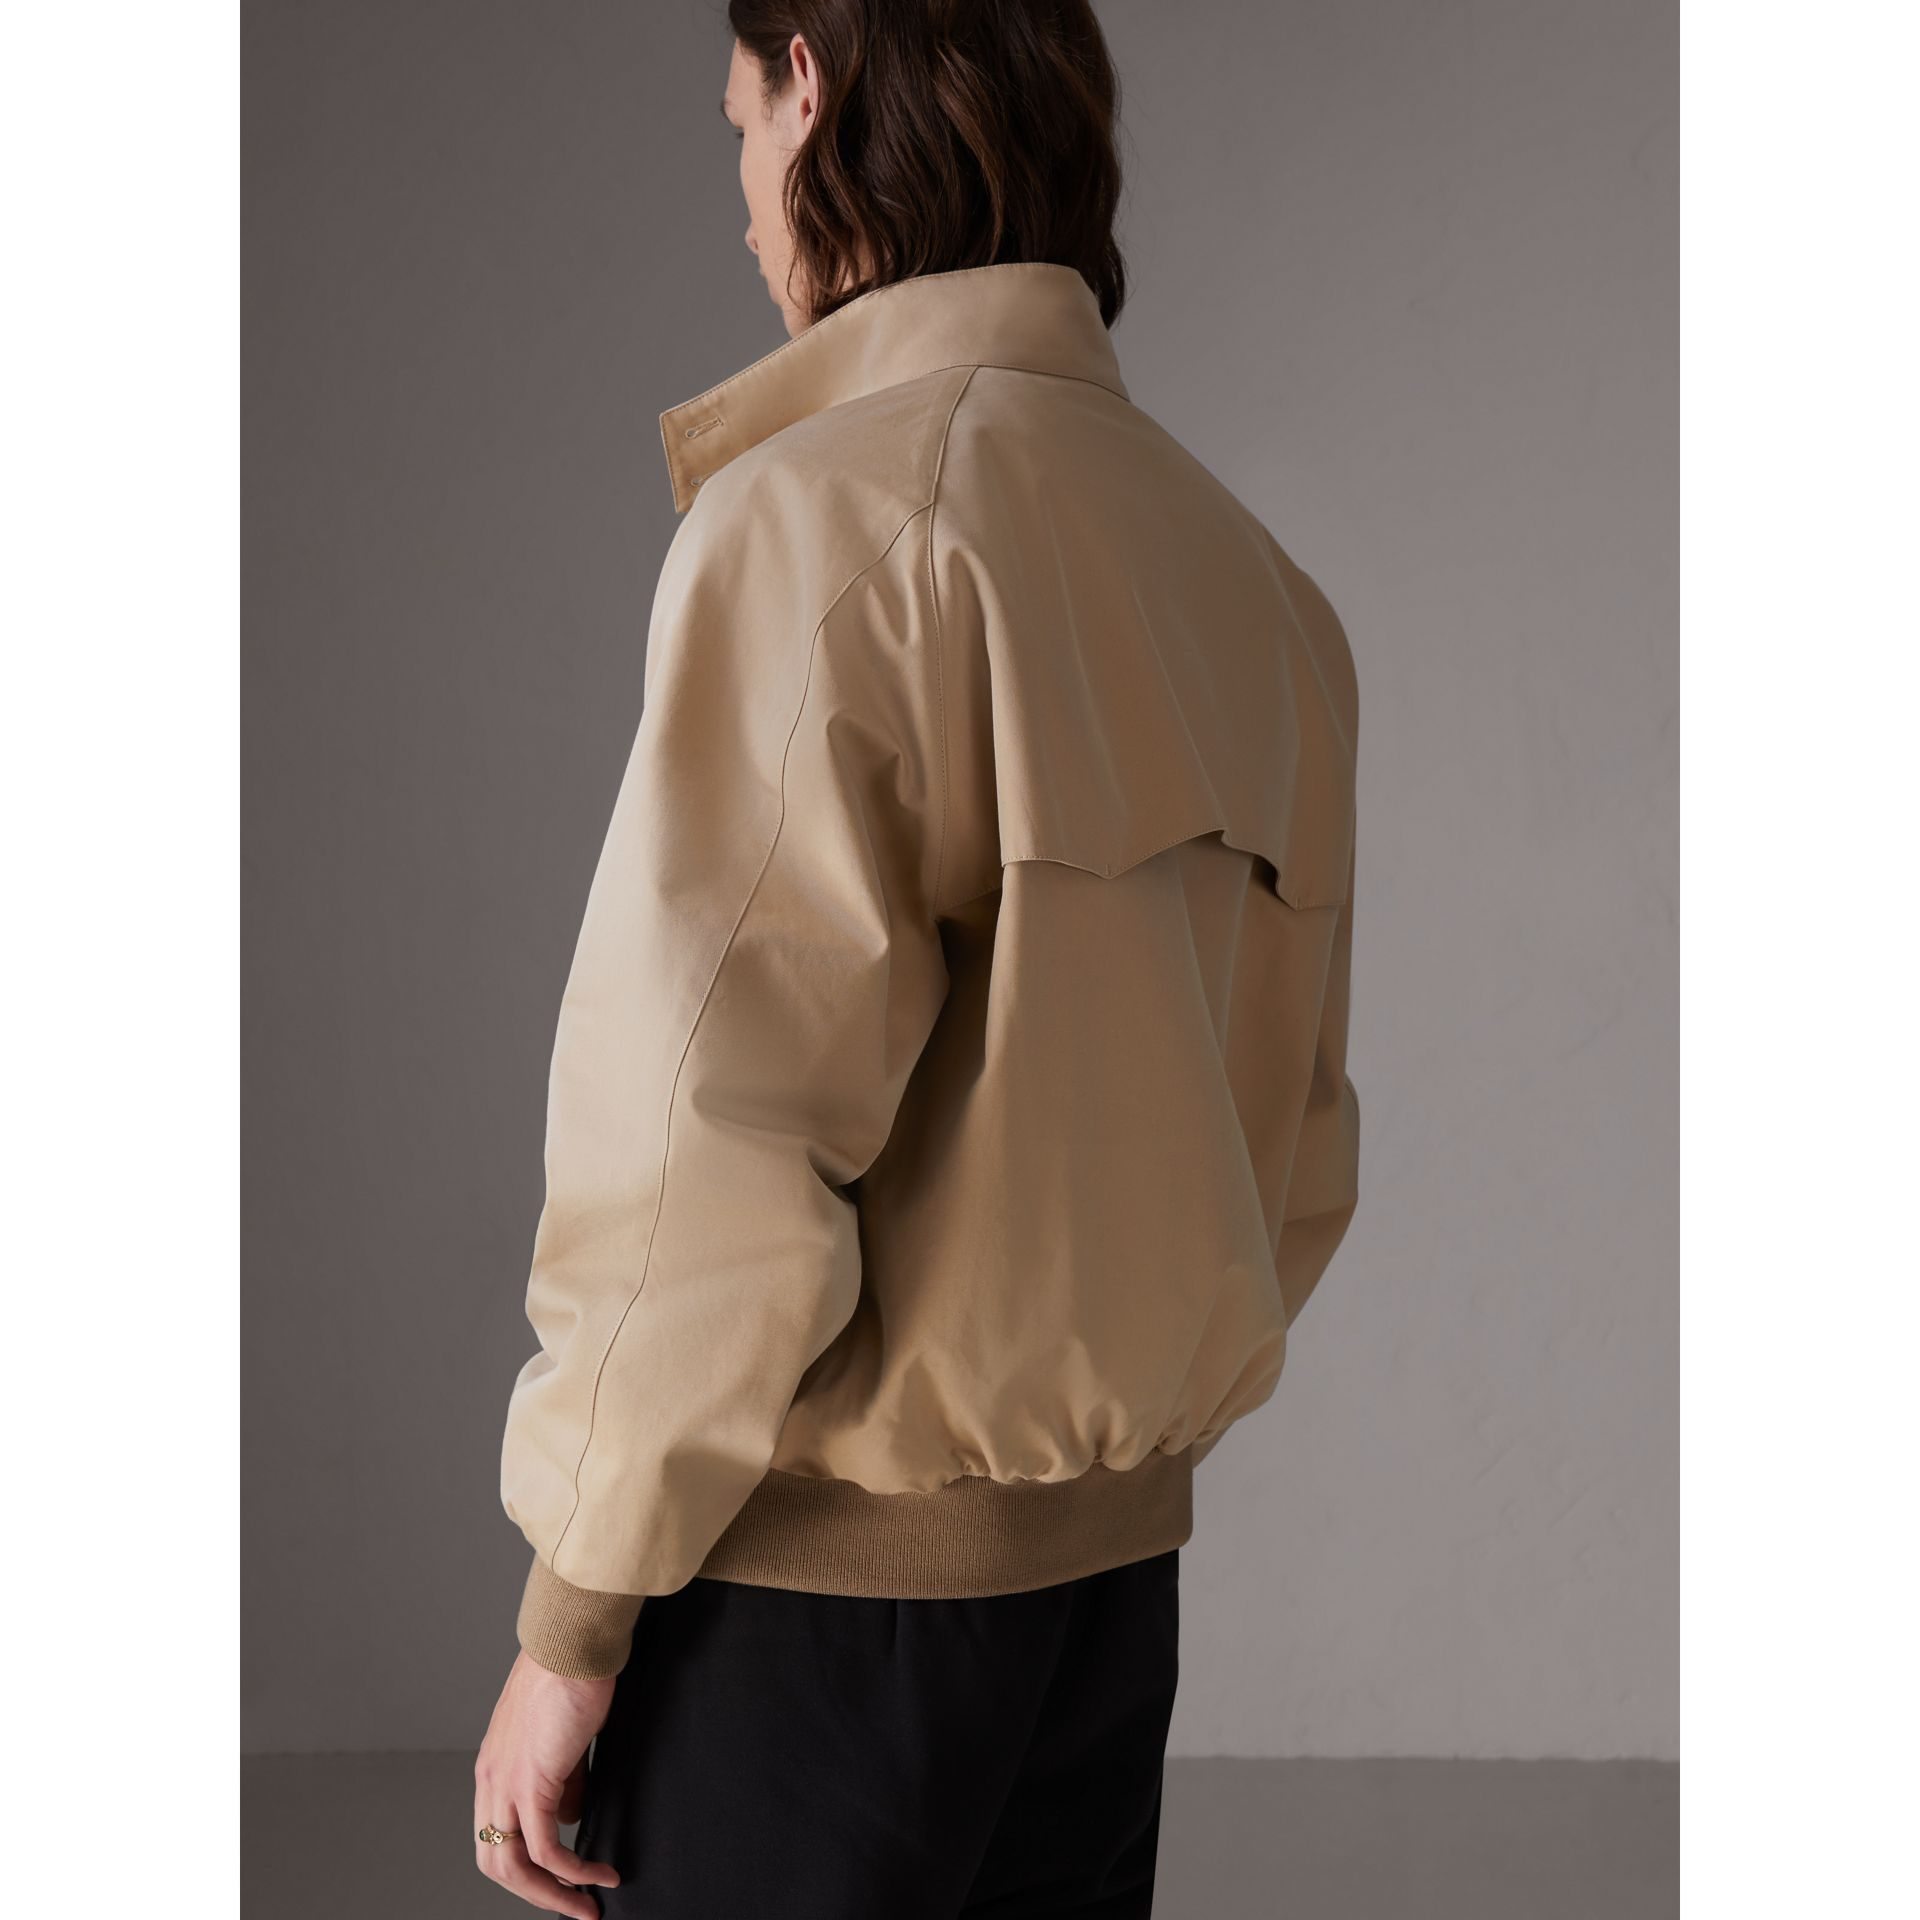 Gosha x Burberry Reversible Harrington Jacket in Honey | Burberry Singapore - gallery image 7